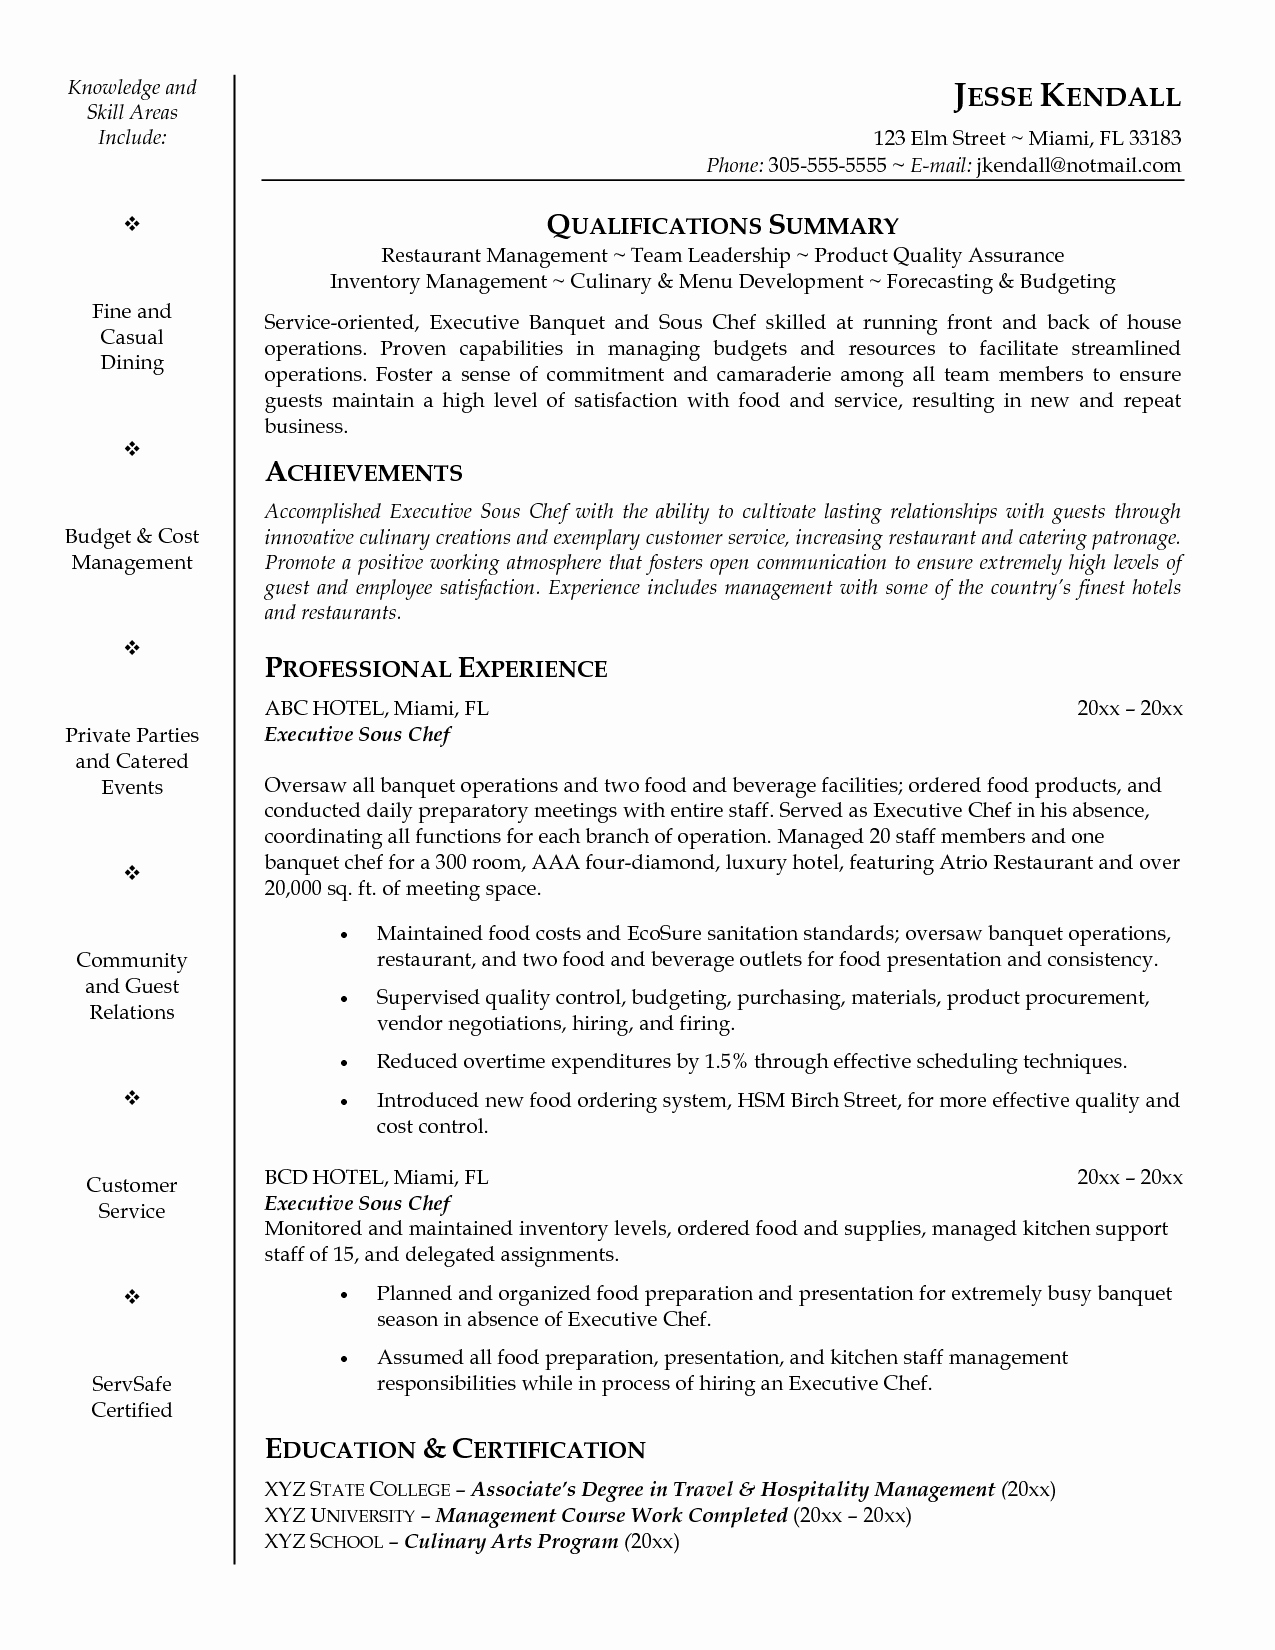 Cook Description for Resume Fresh Pin Oleh Resumeweb Di Job Resume format